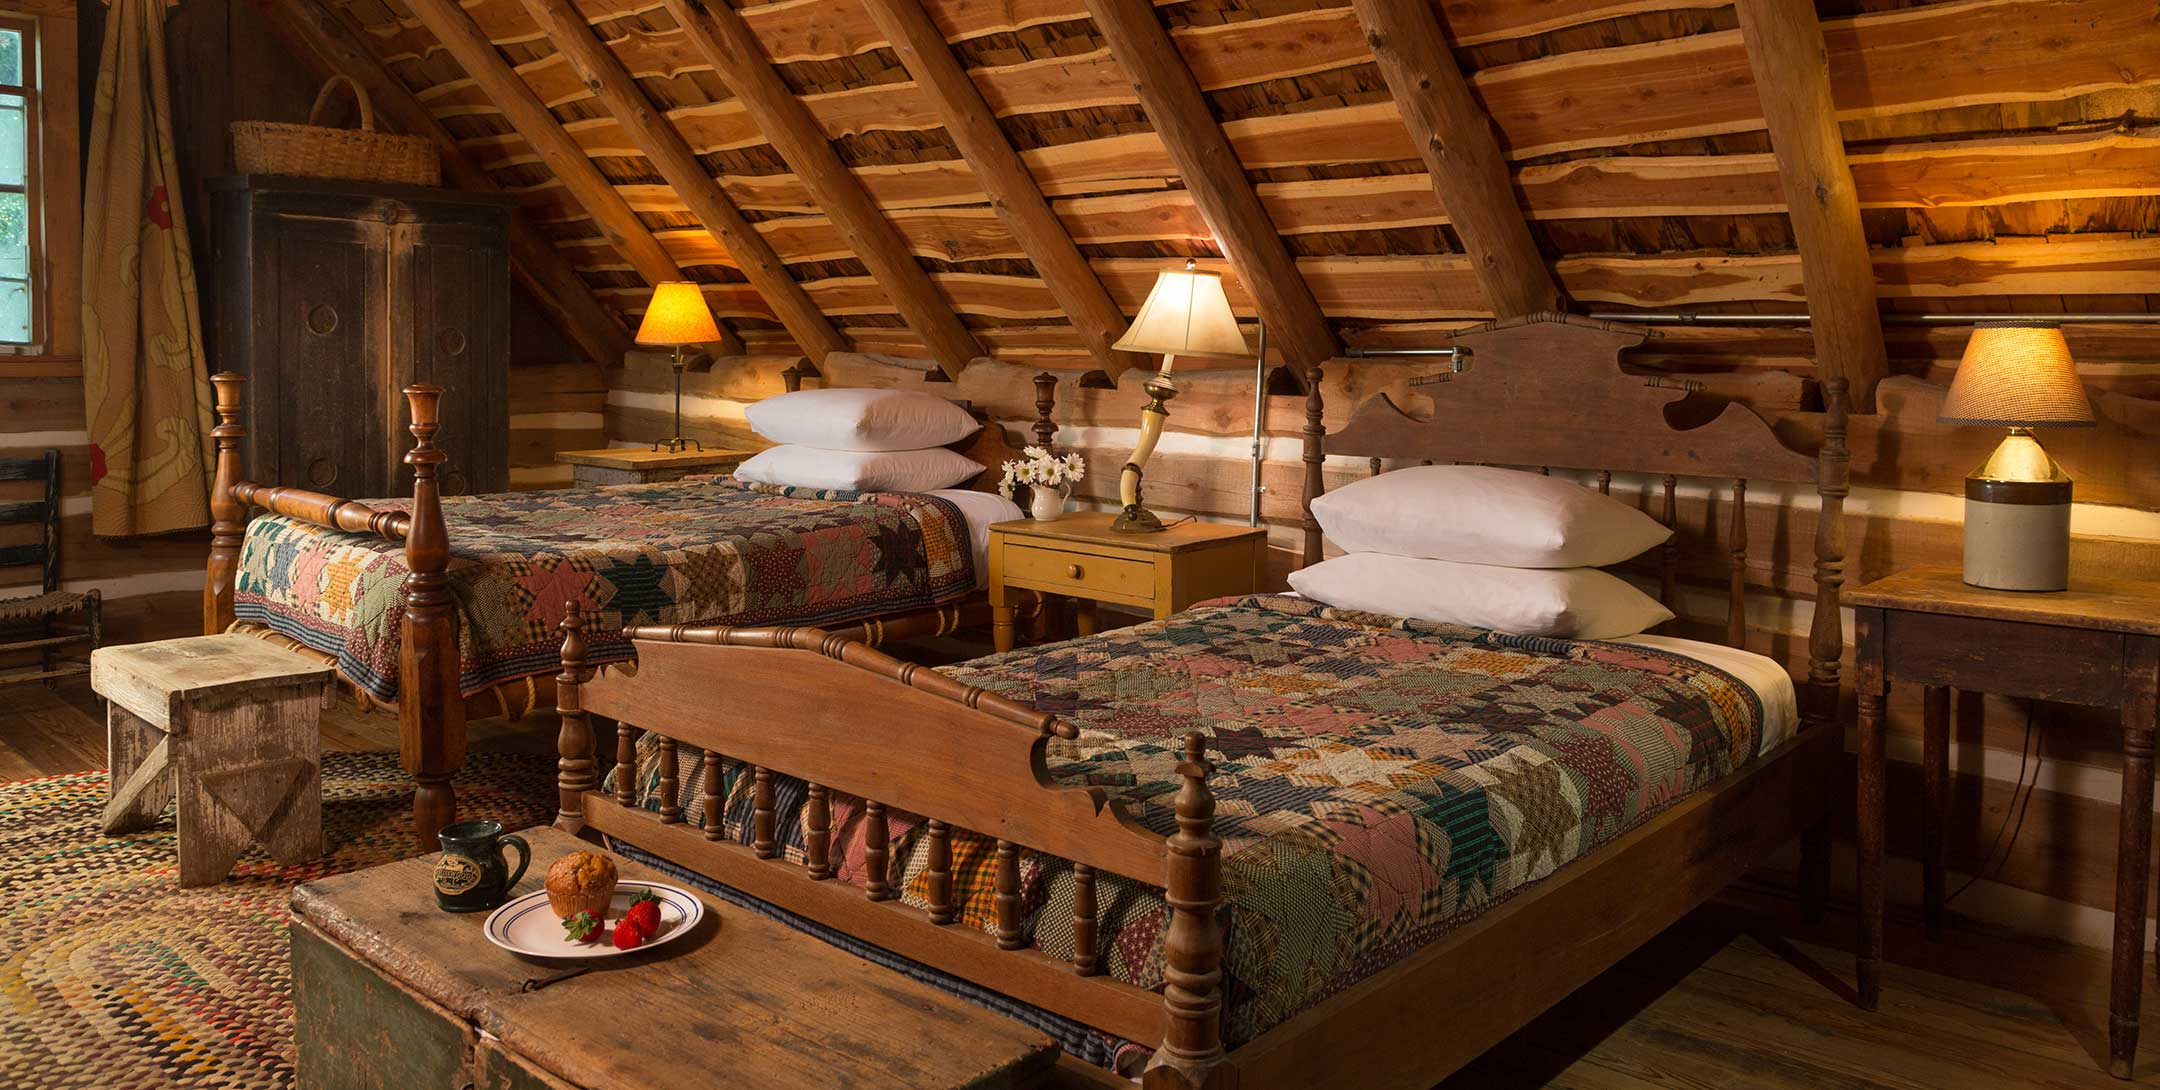 The Log Cabin twin beds